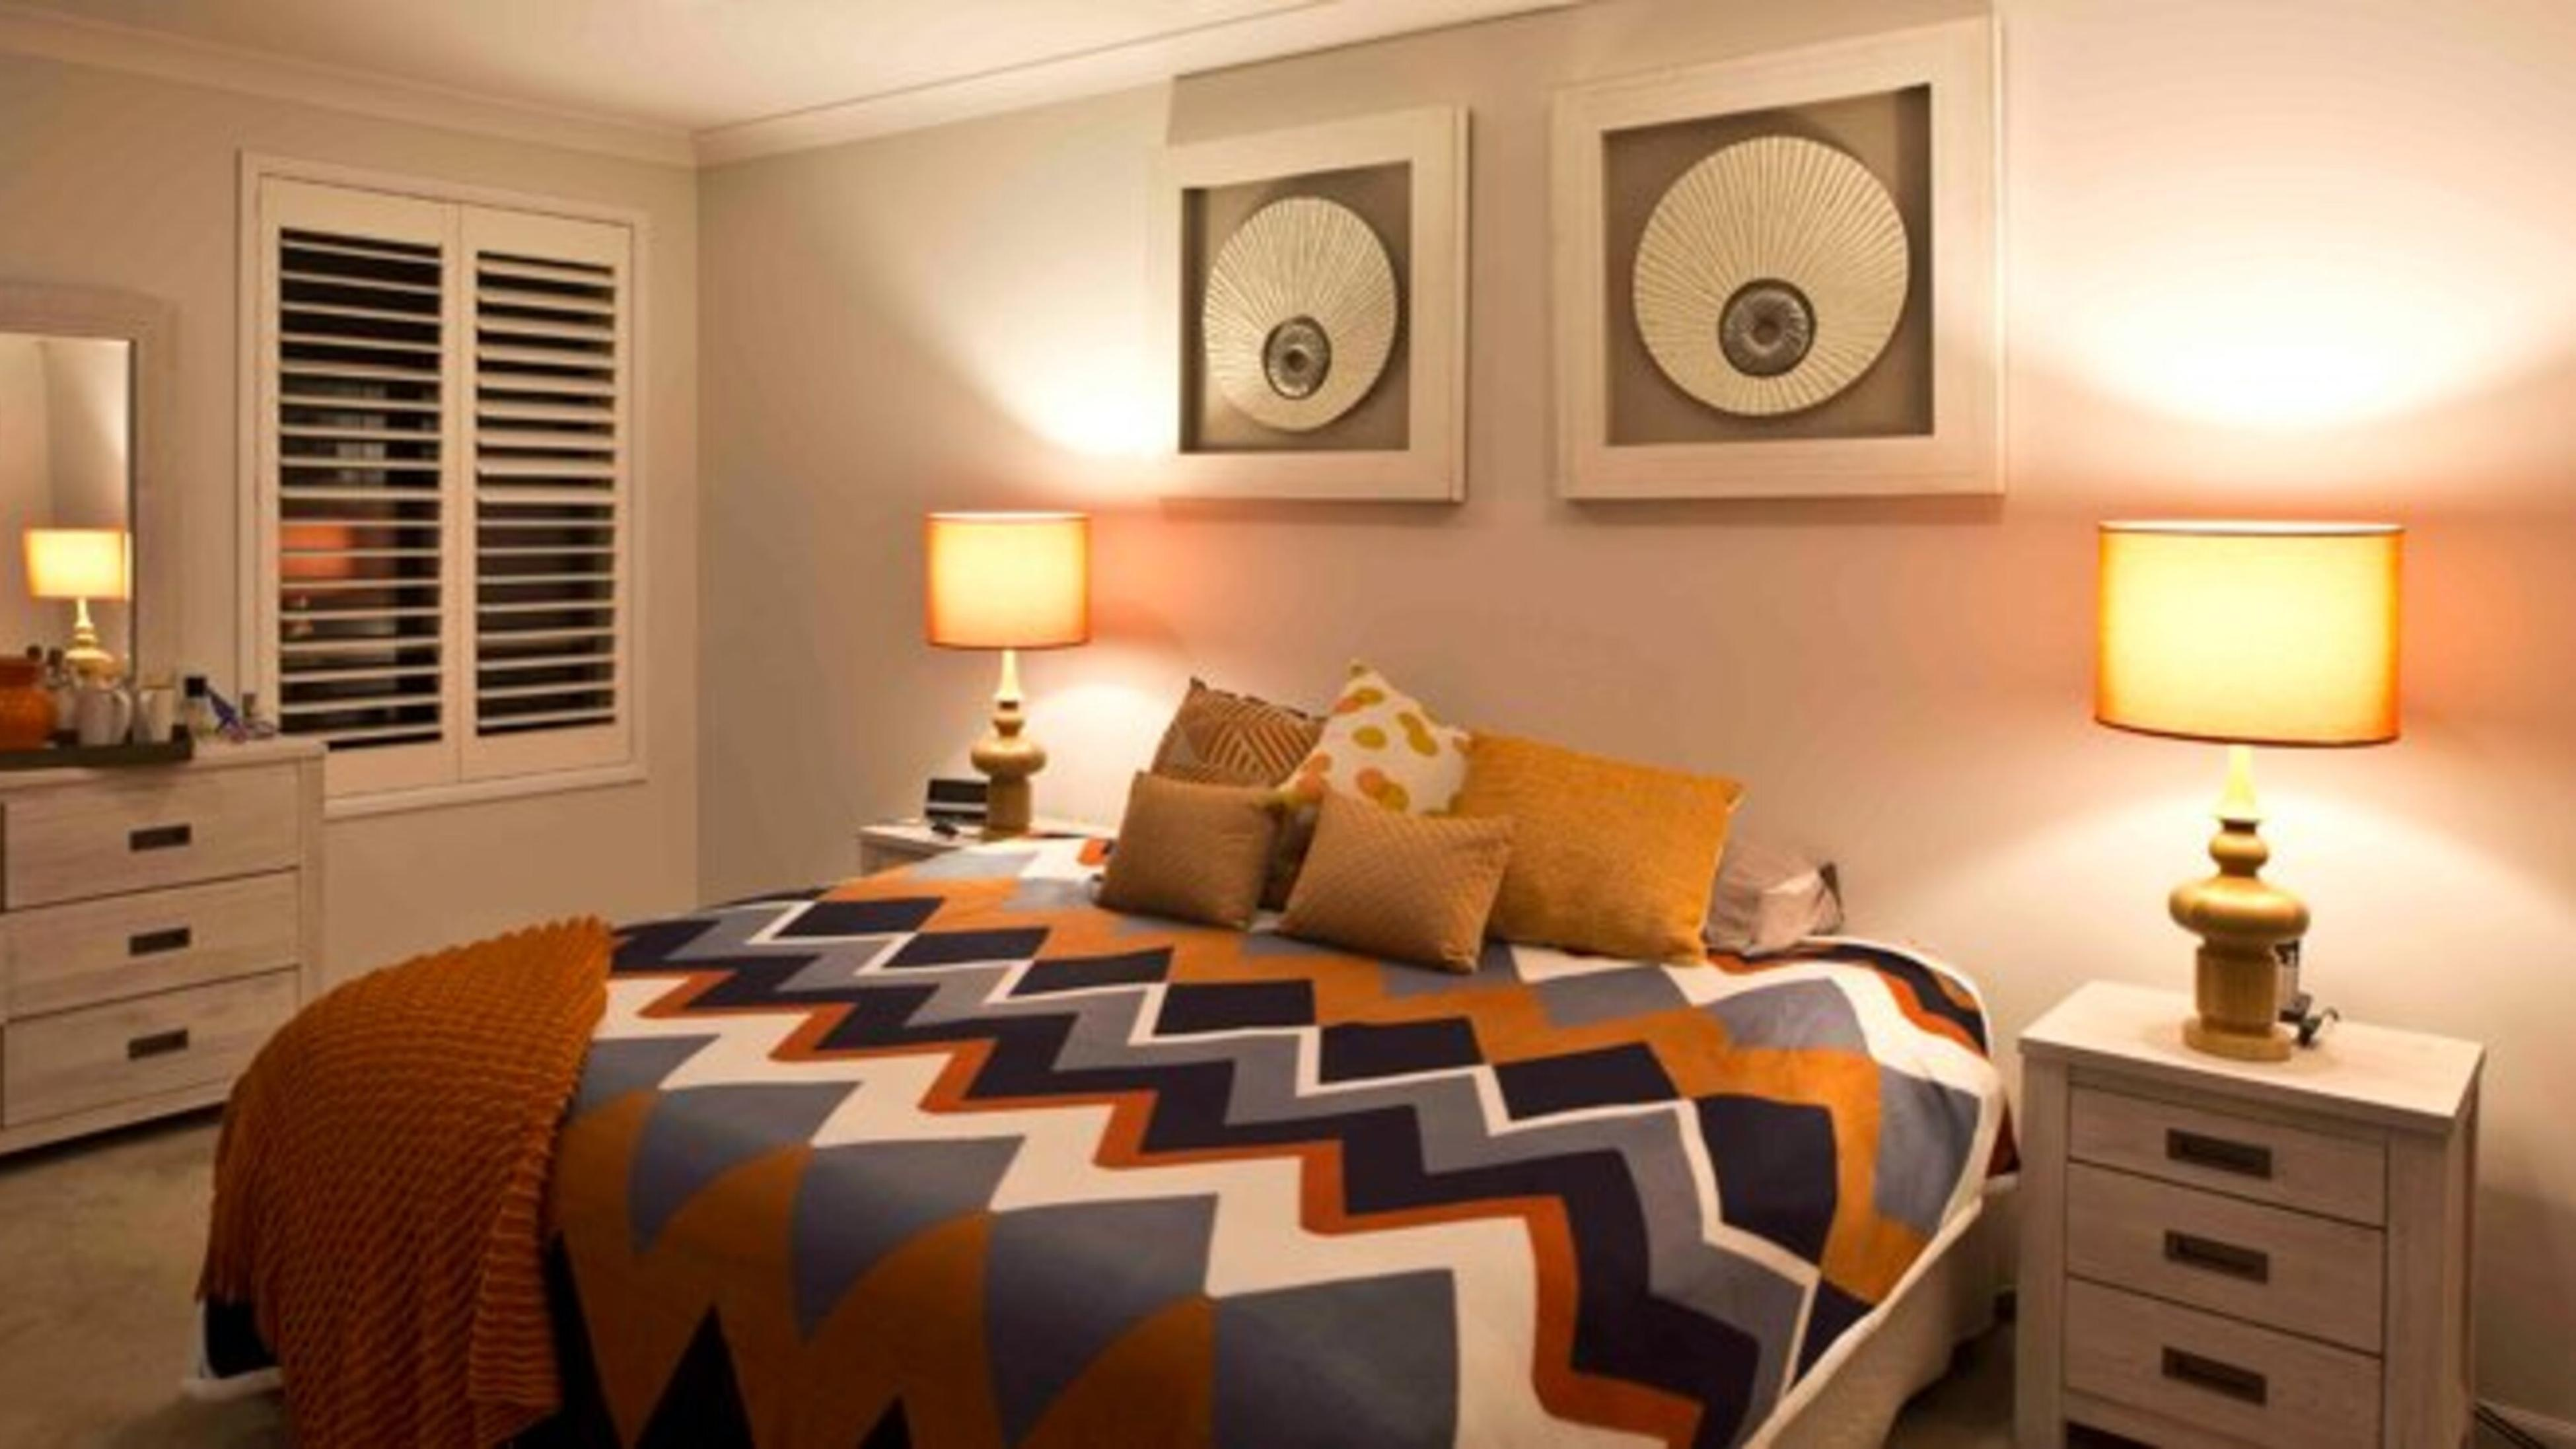 A bedroom with wall art, lamps, a dresser and shutter windows.